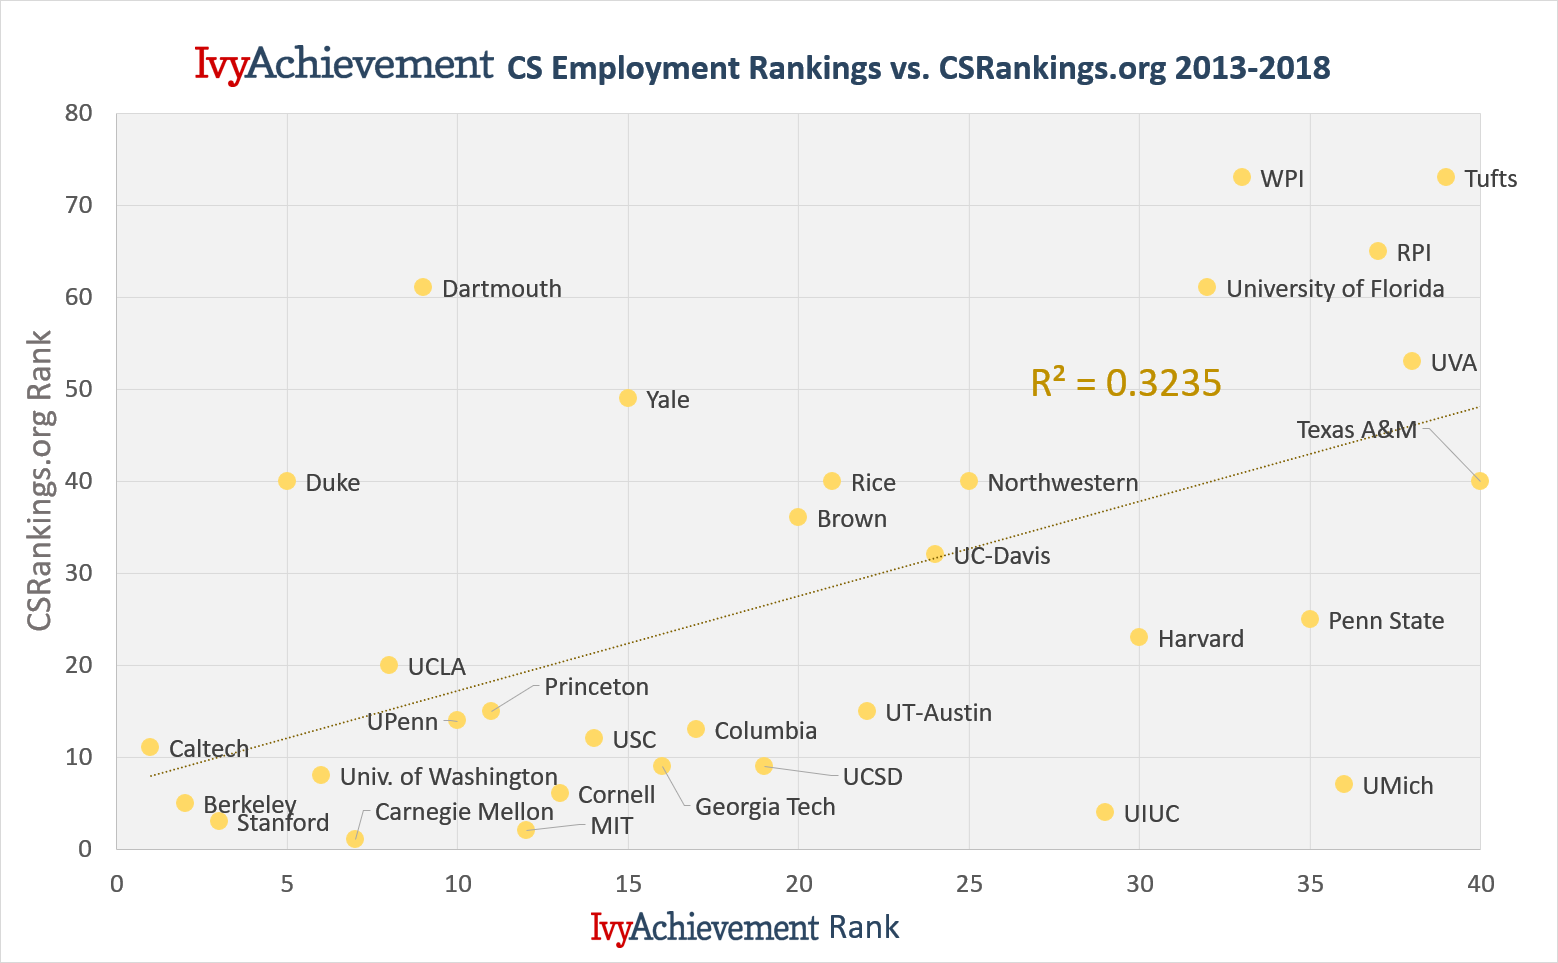 IvyAchievement computer science employment index vs CSRankings